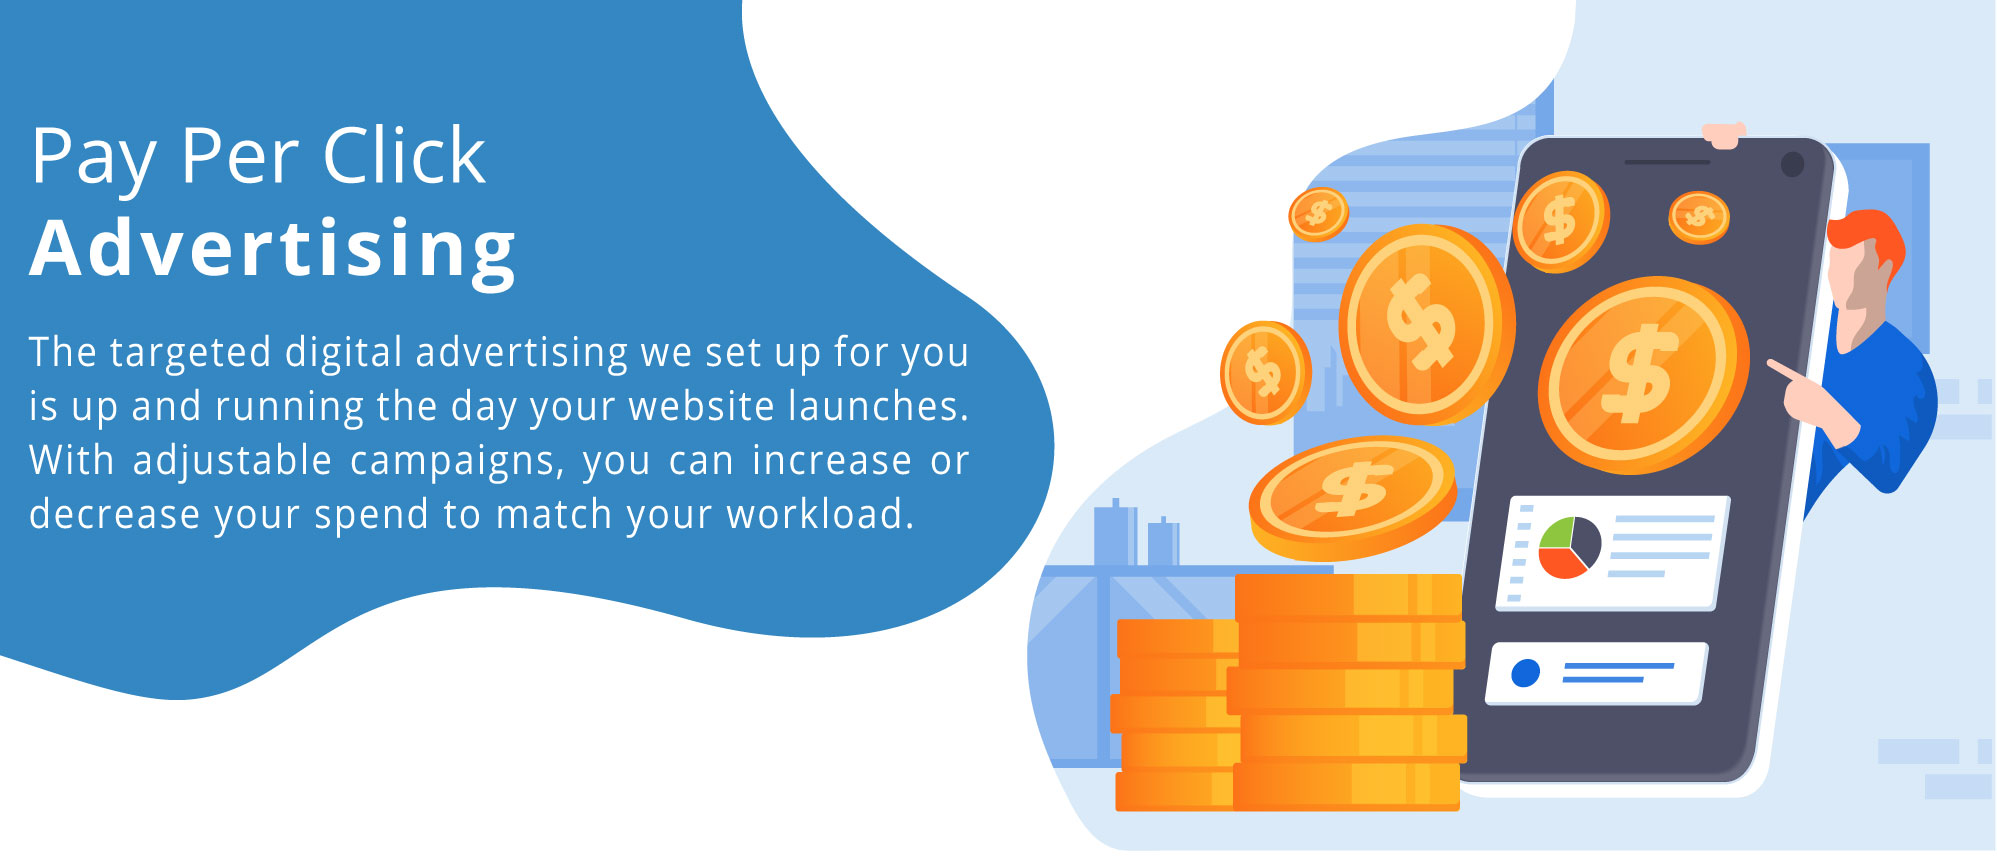 Pay Per Click or PPC Advertising Campaigns, Pay Per Click or PPC Advertising Campaigns Lebanon Beirut, Pay Per Click or PPC Advertising Campaigns In Lebanon Beirut